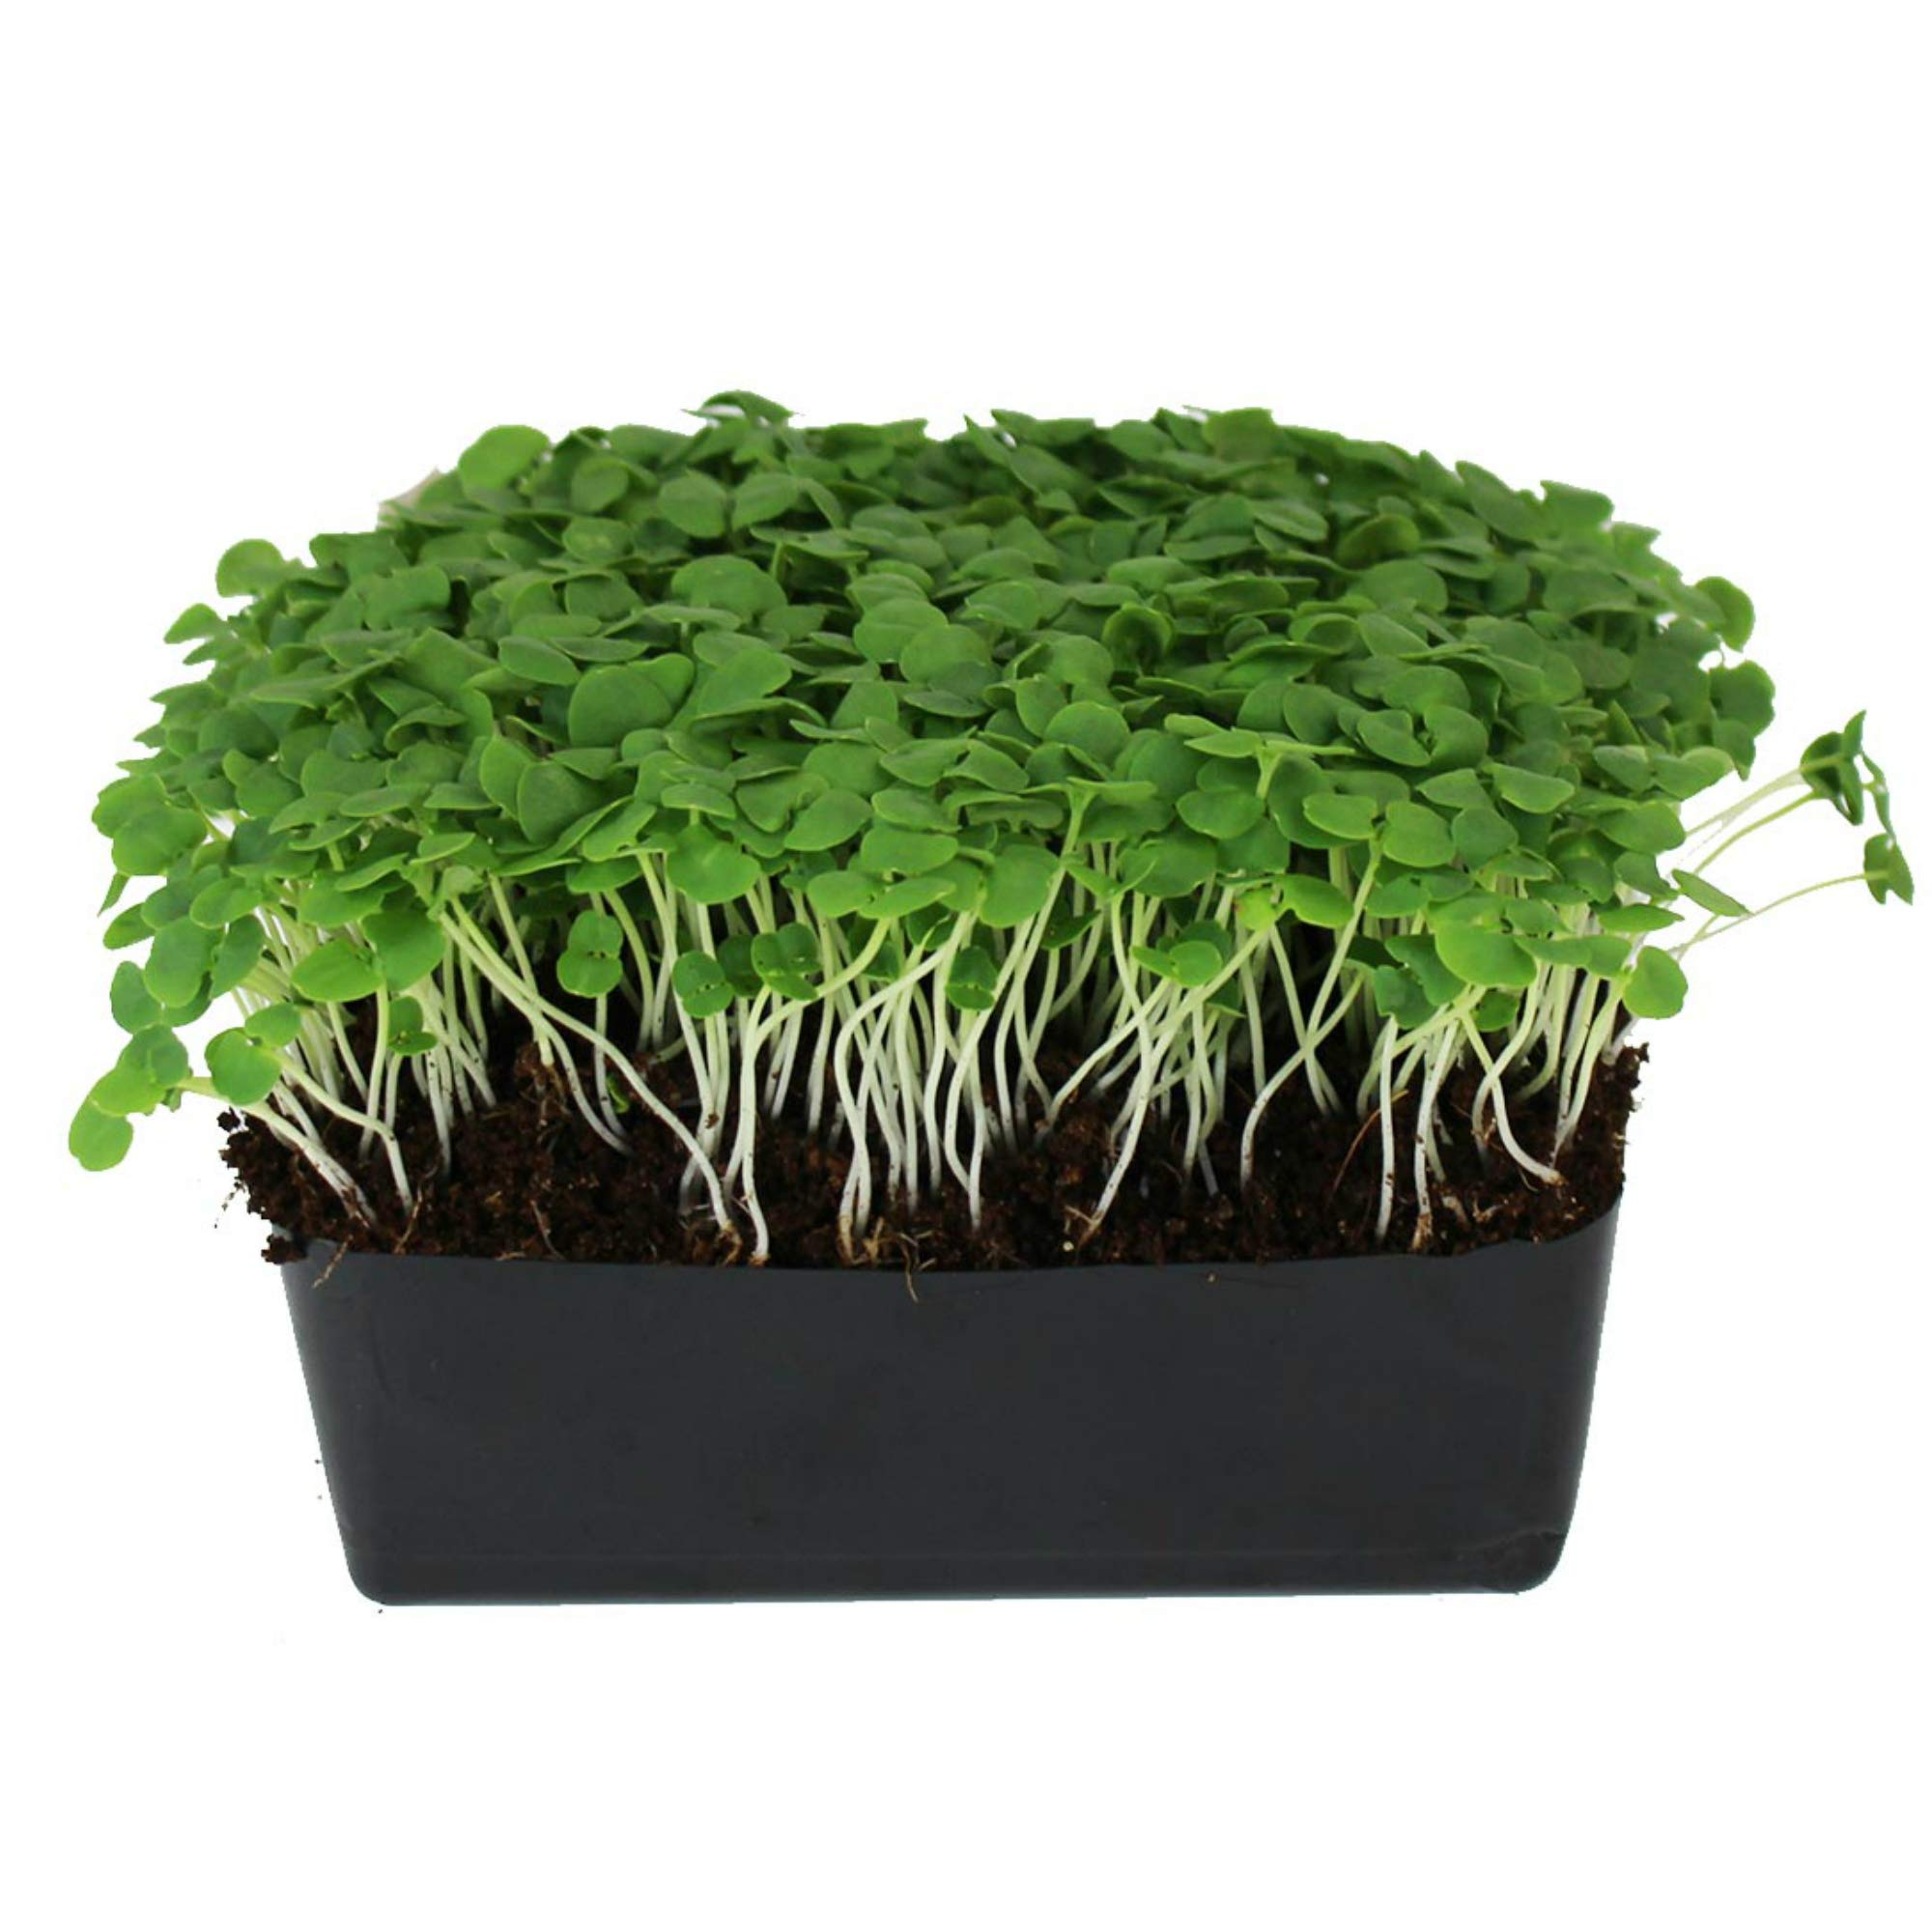 Thai Basil Seeds - Bulk Herb Seeds for Growing Microgreens, Indoor Gardening: Micro Greens Salad (1 Lb) by Mountain Valley Seed Company (Image #1)